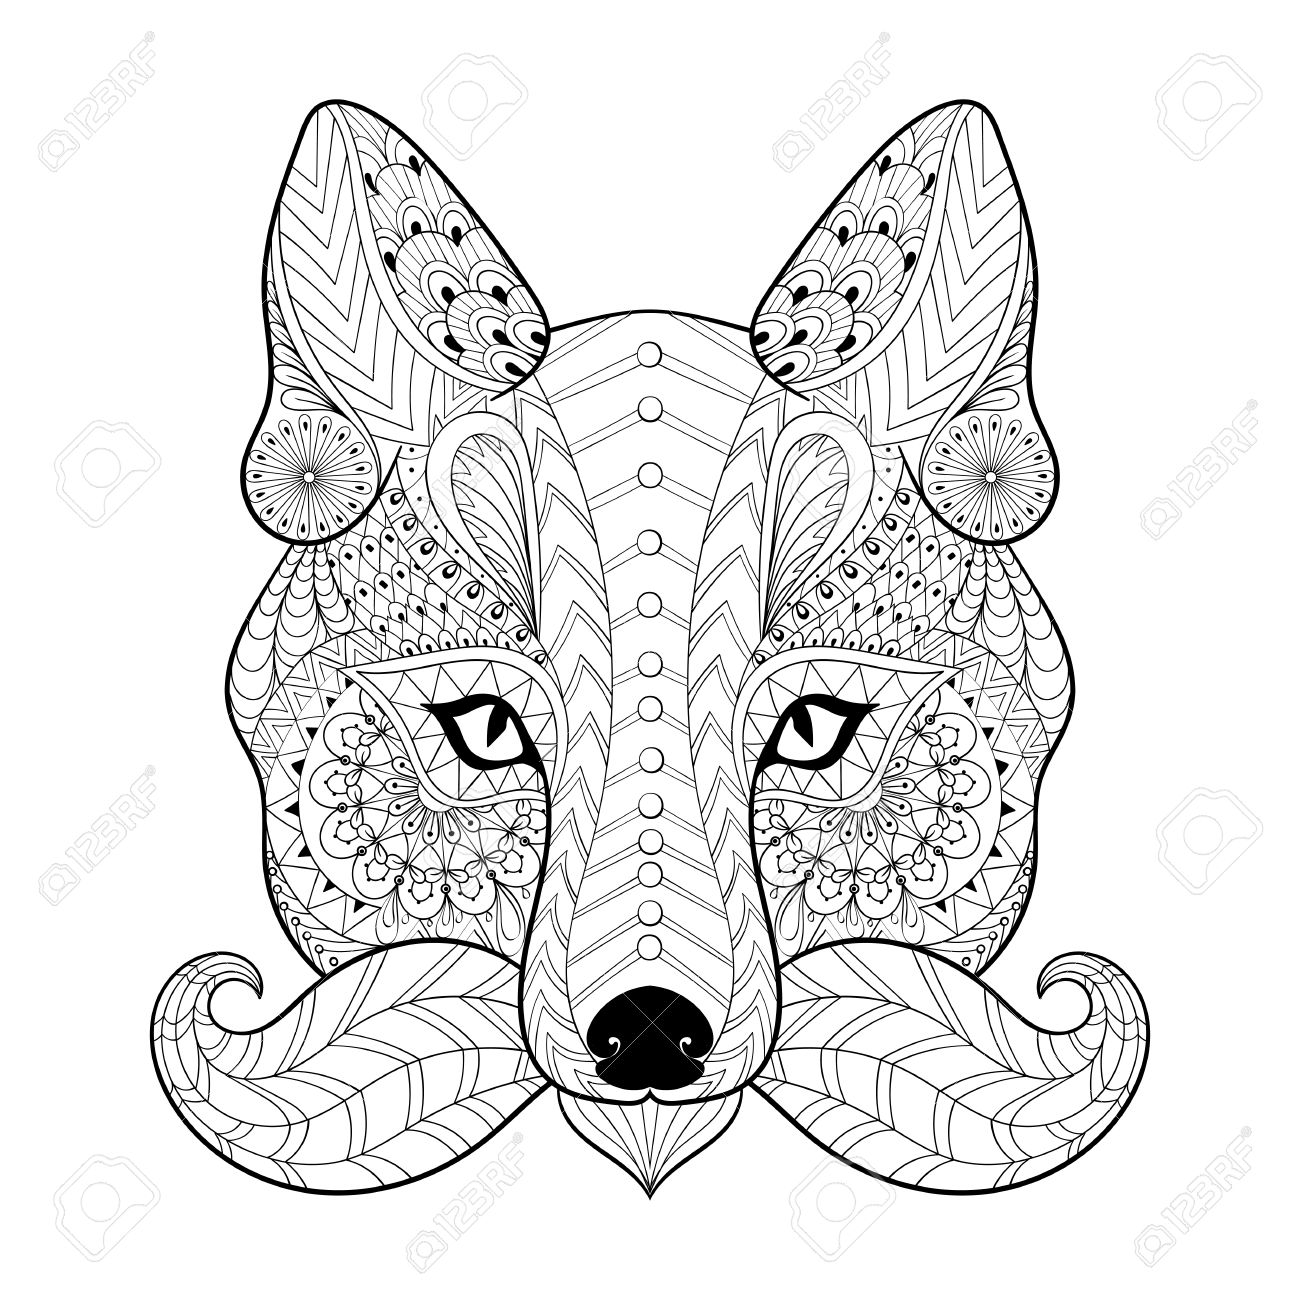 8 046 animal mustache stock vector illustration and royalty free